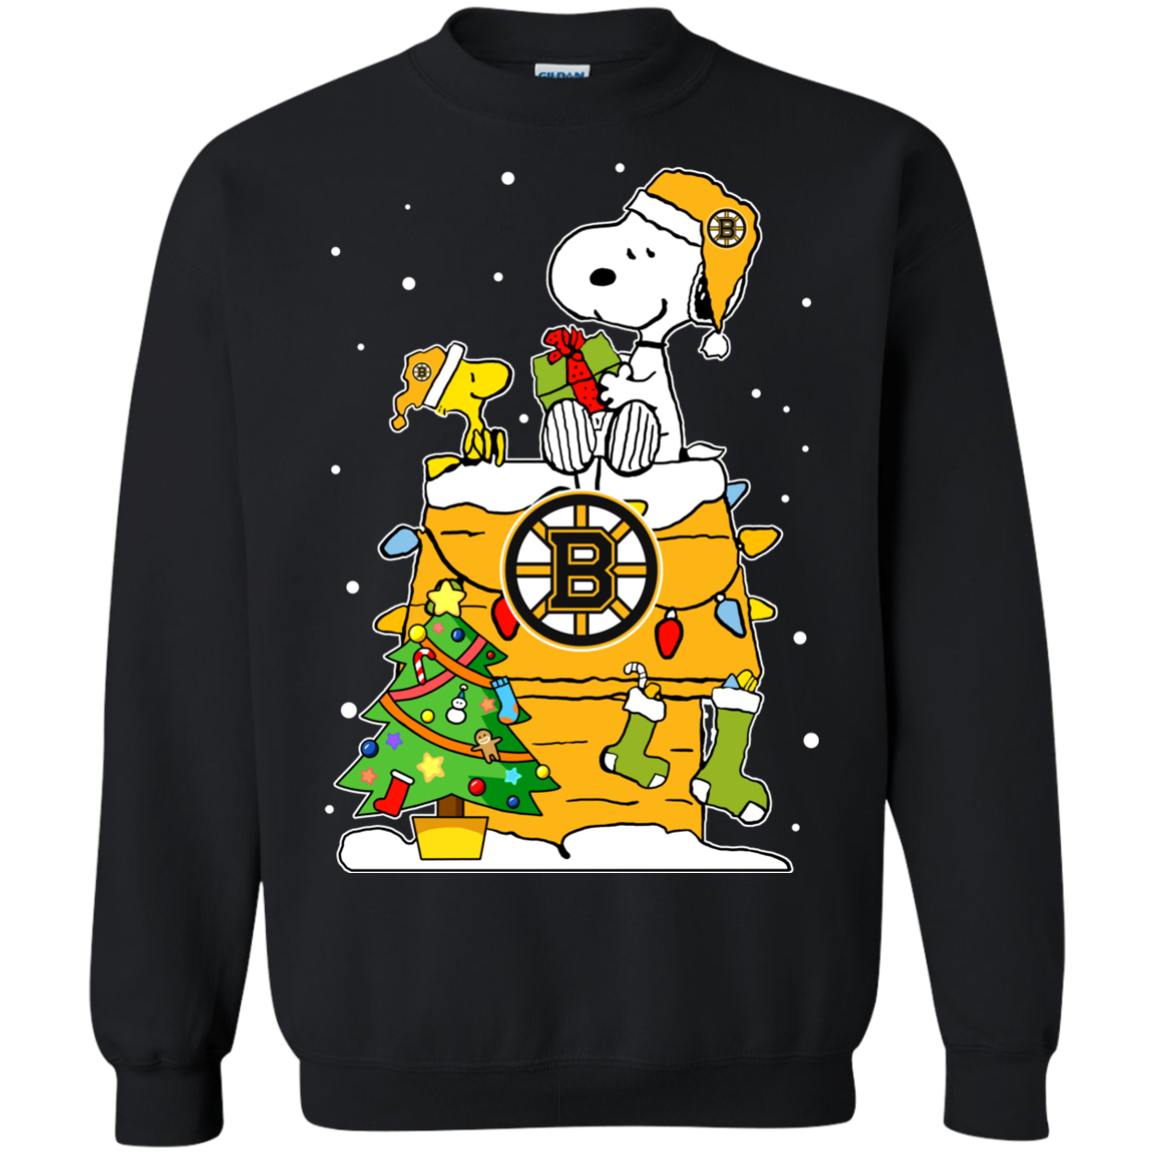 Boston Bruins Snoopy Ugly Christmas Sweaters Shirts